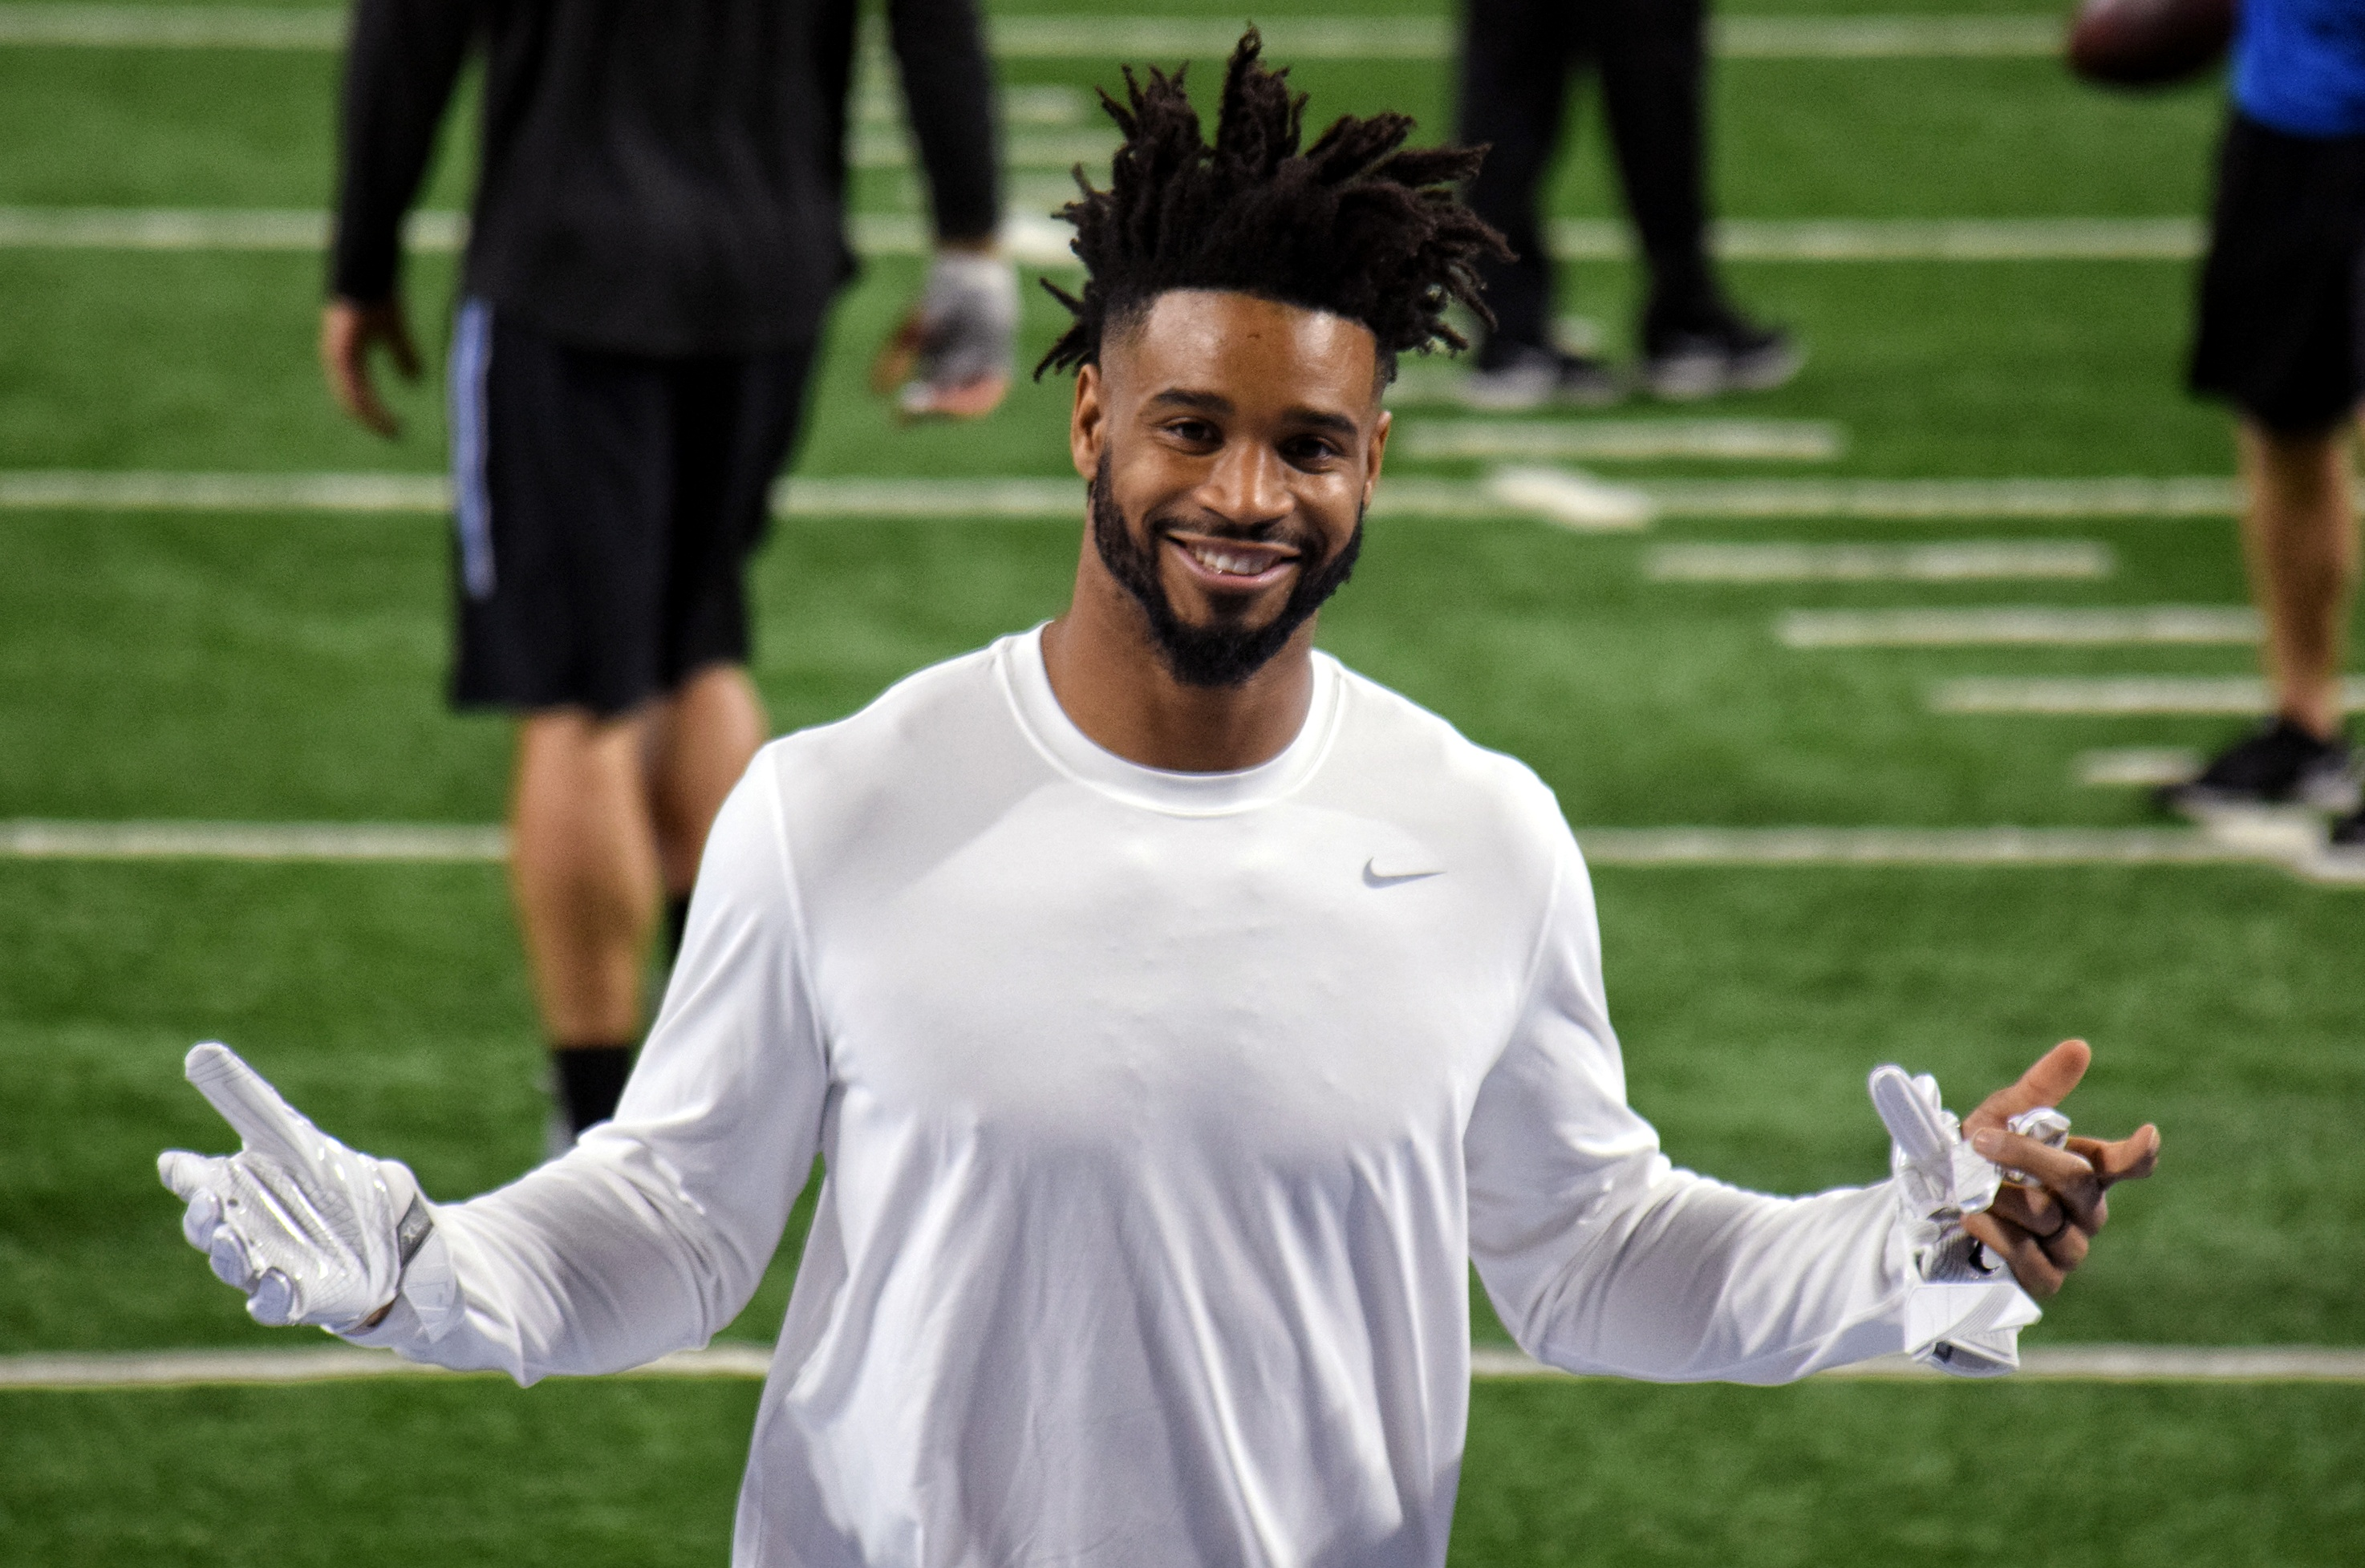 reputable site 9fa4b 5fc37 Darius Slay - Wikipedia